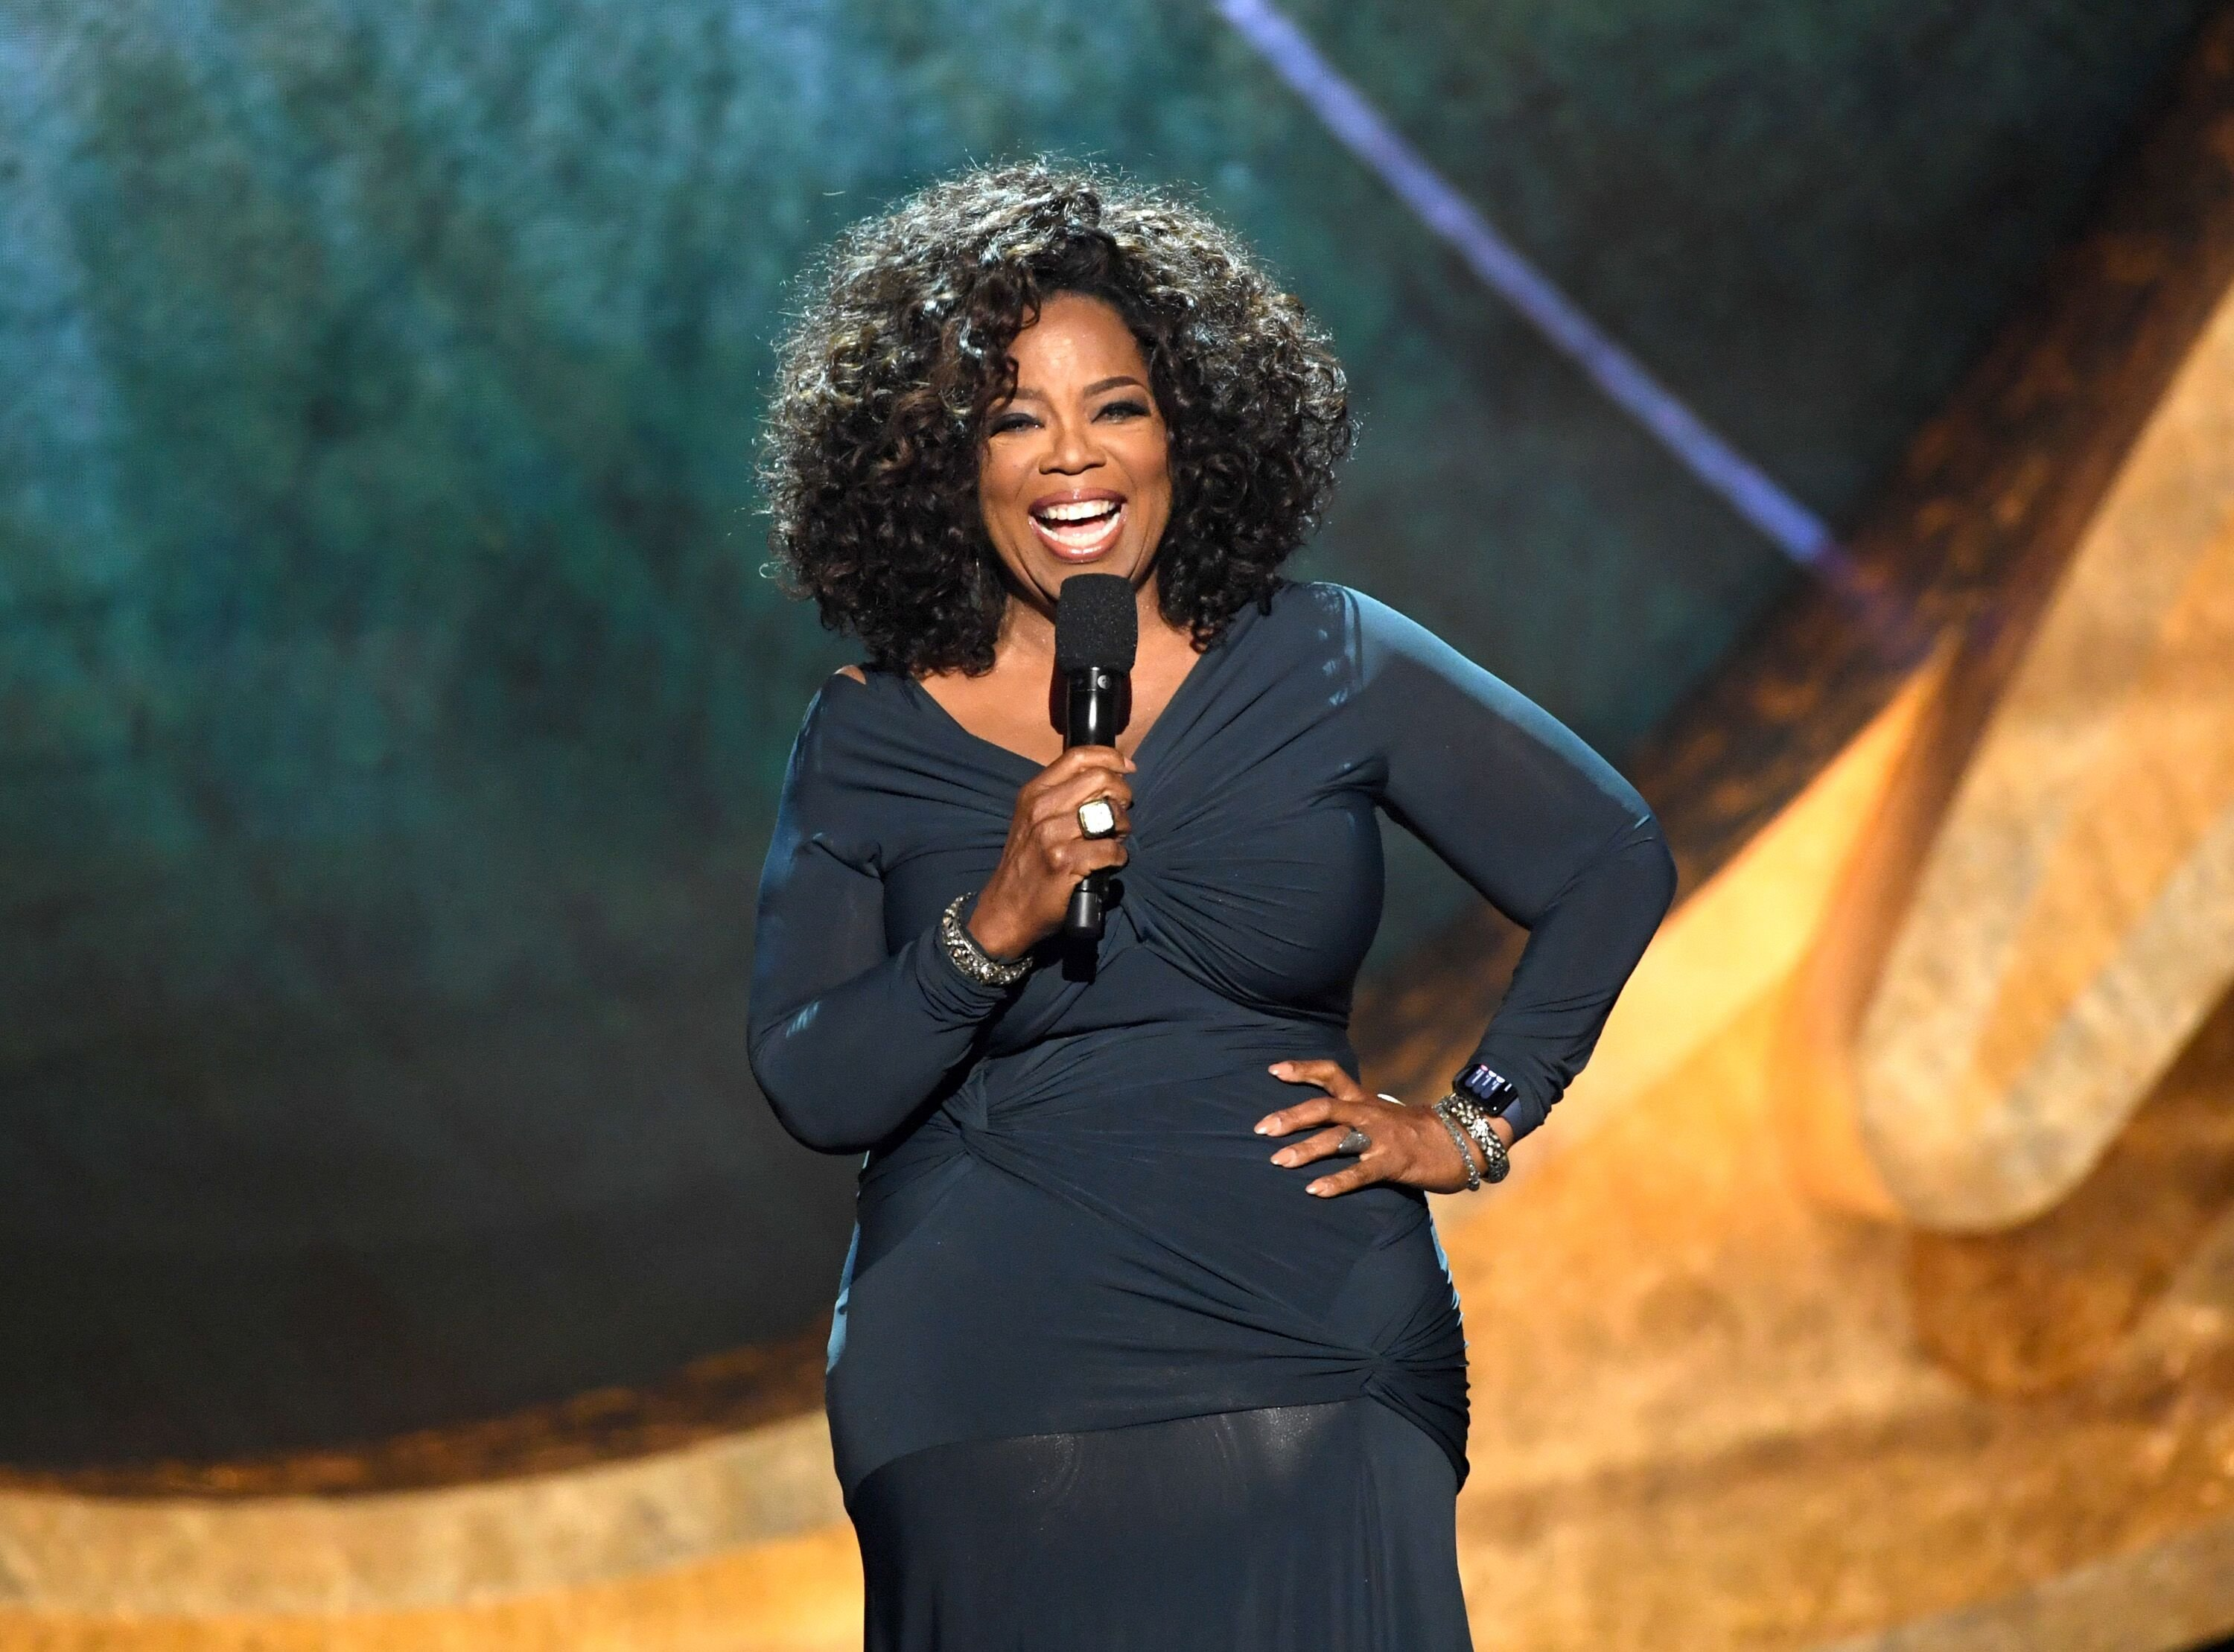 Oprah Winfrey speaks onstage at Q85: A Musical Celebration for Quincy Jones. | Source: Getty Images